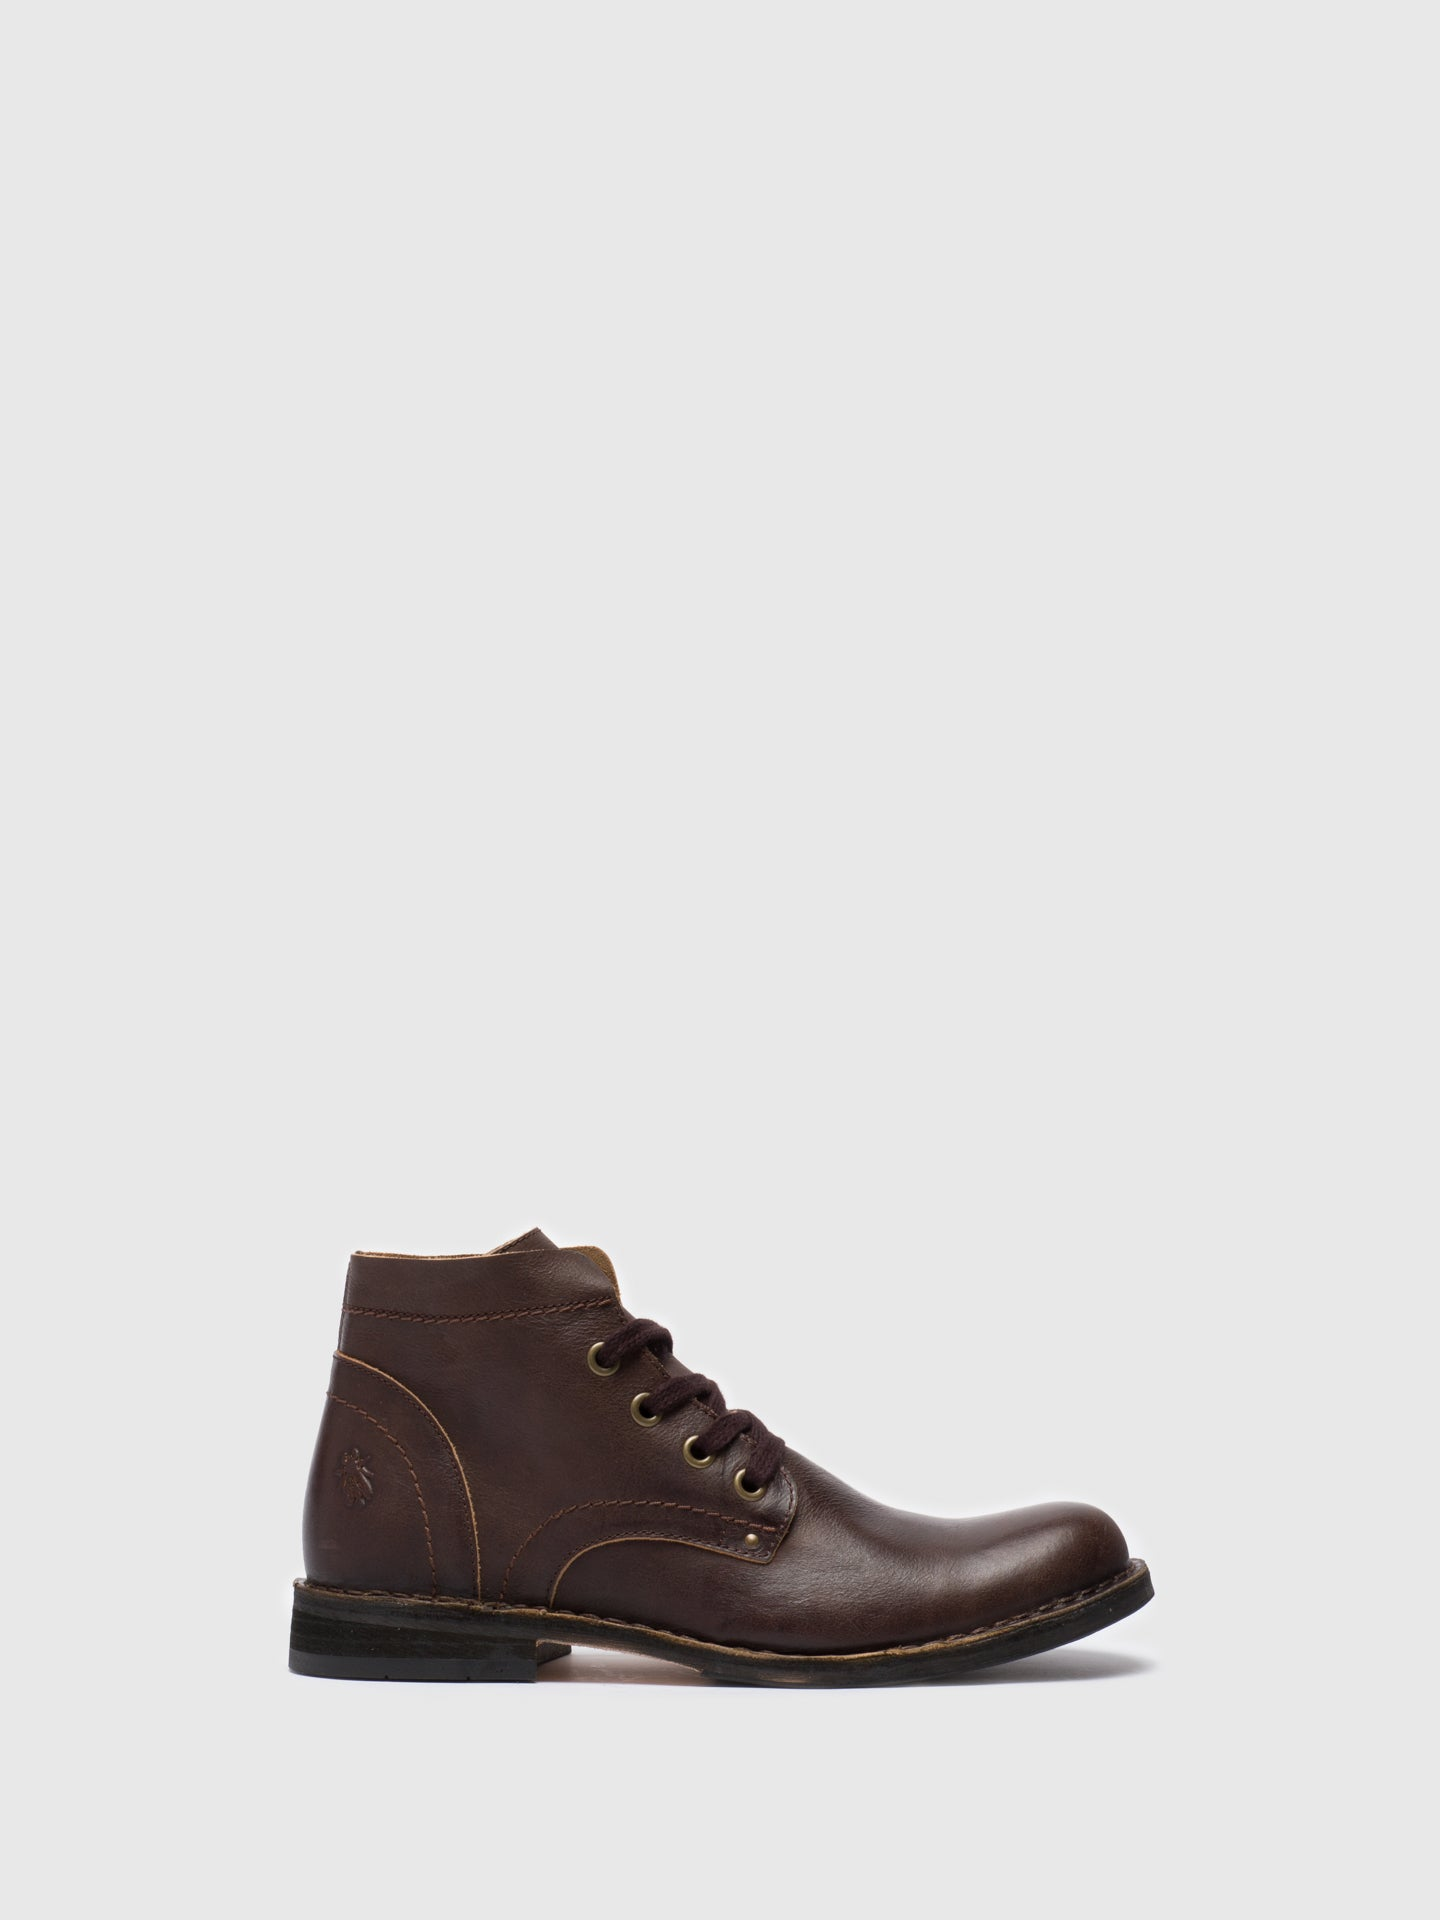 Fly London Brown Lace-up Ankle Boots